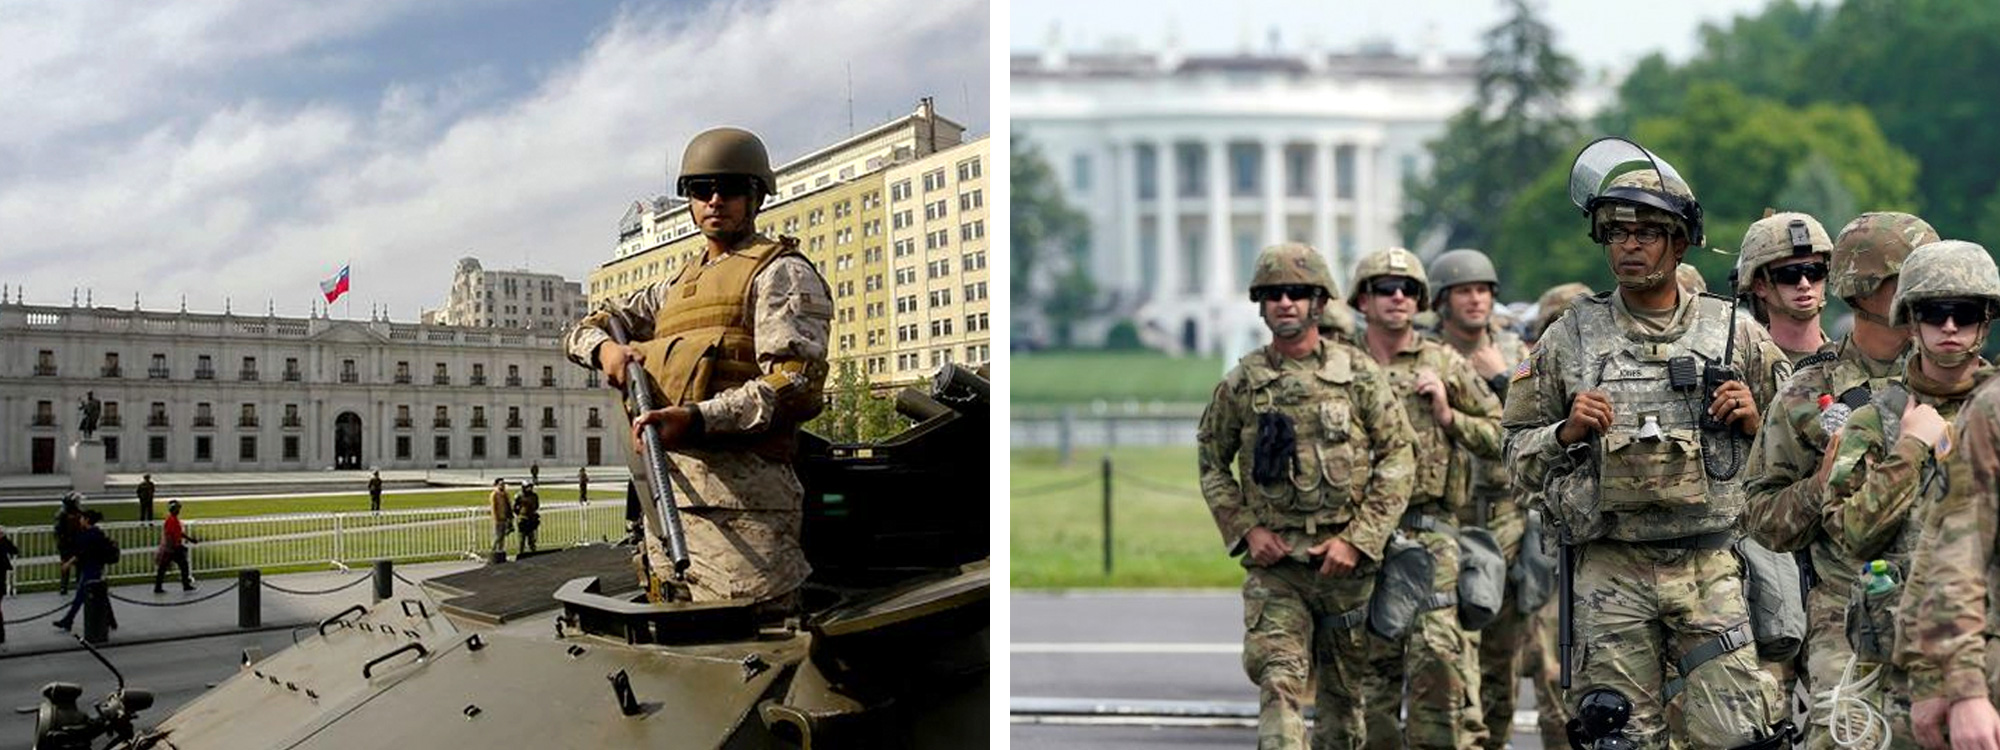 Two photos: an armed military man on a tank in Chile, a group of military men in the United States